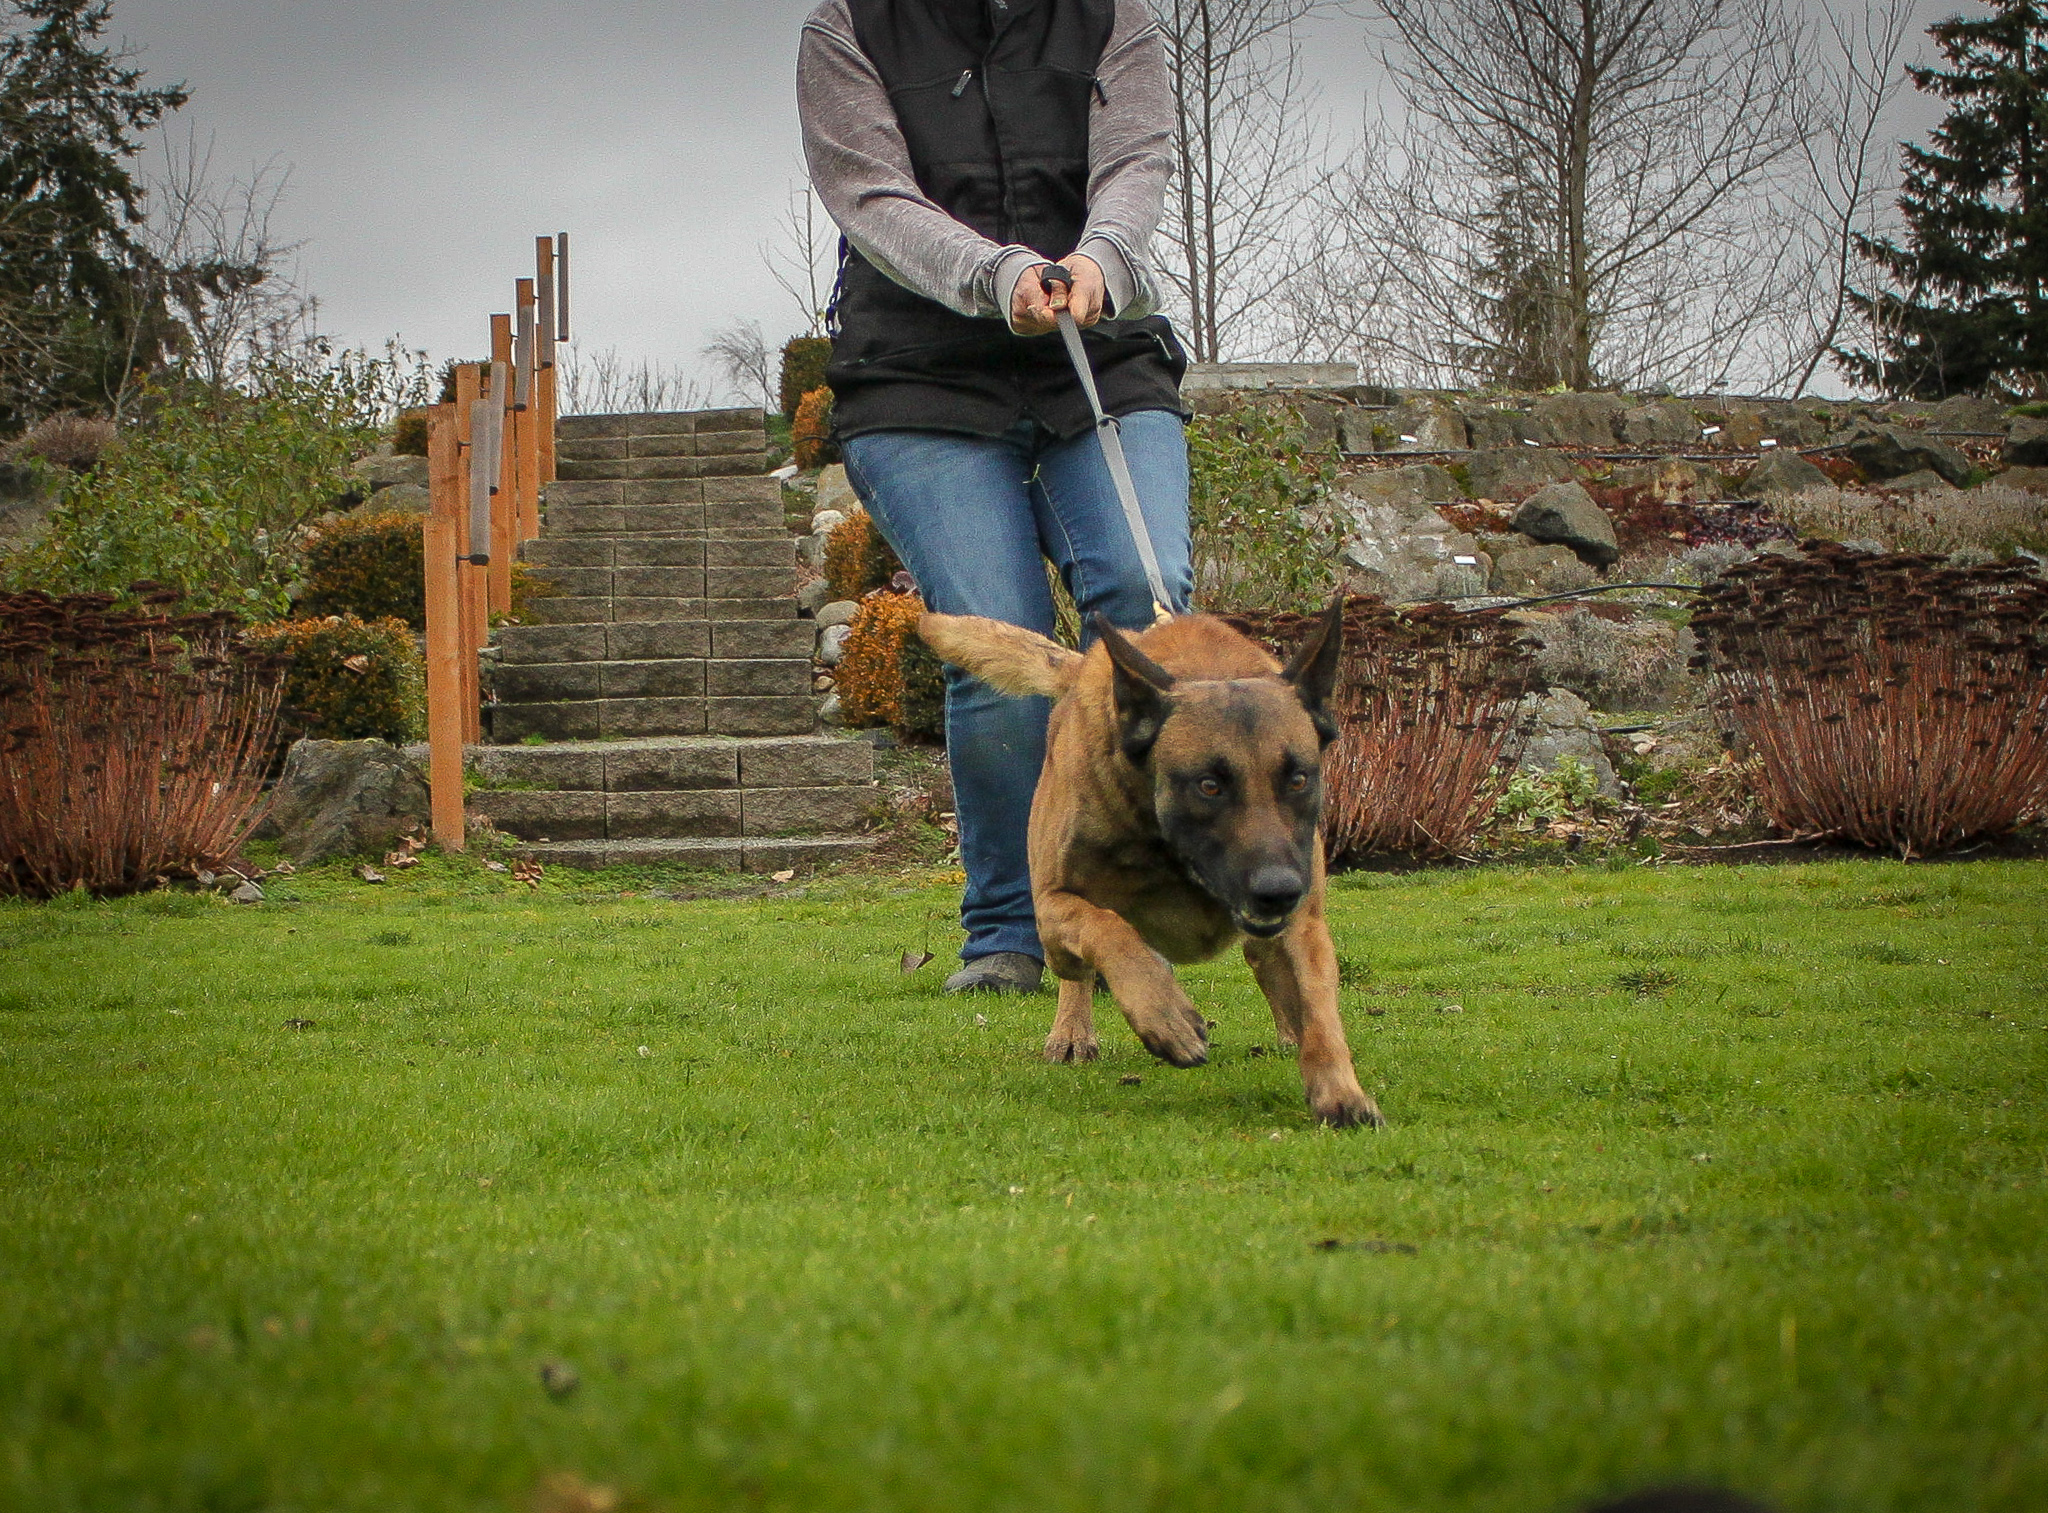 Don't Walk Your Dog: Why we ditch the daily walk to teach Loose Leash Walking